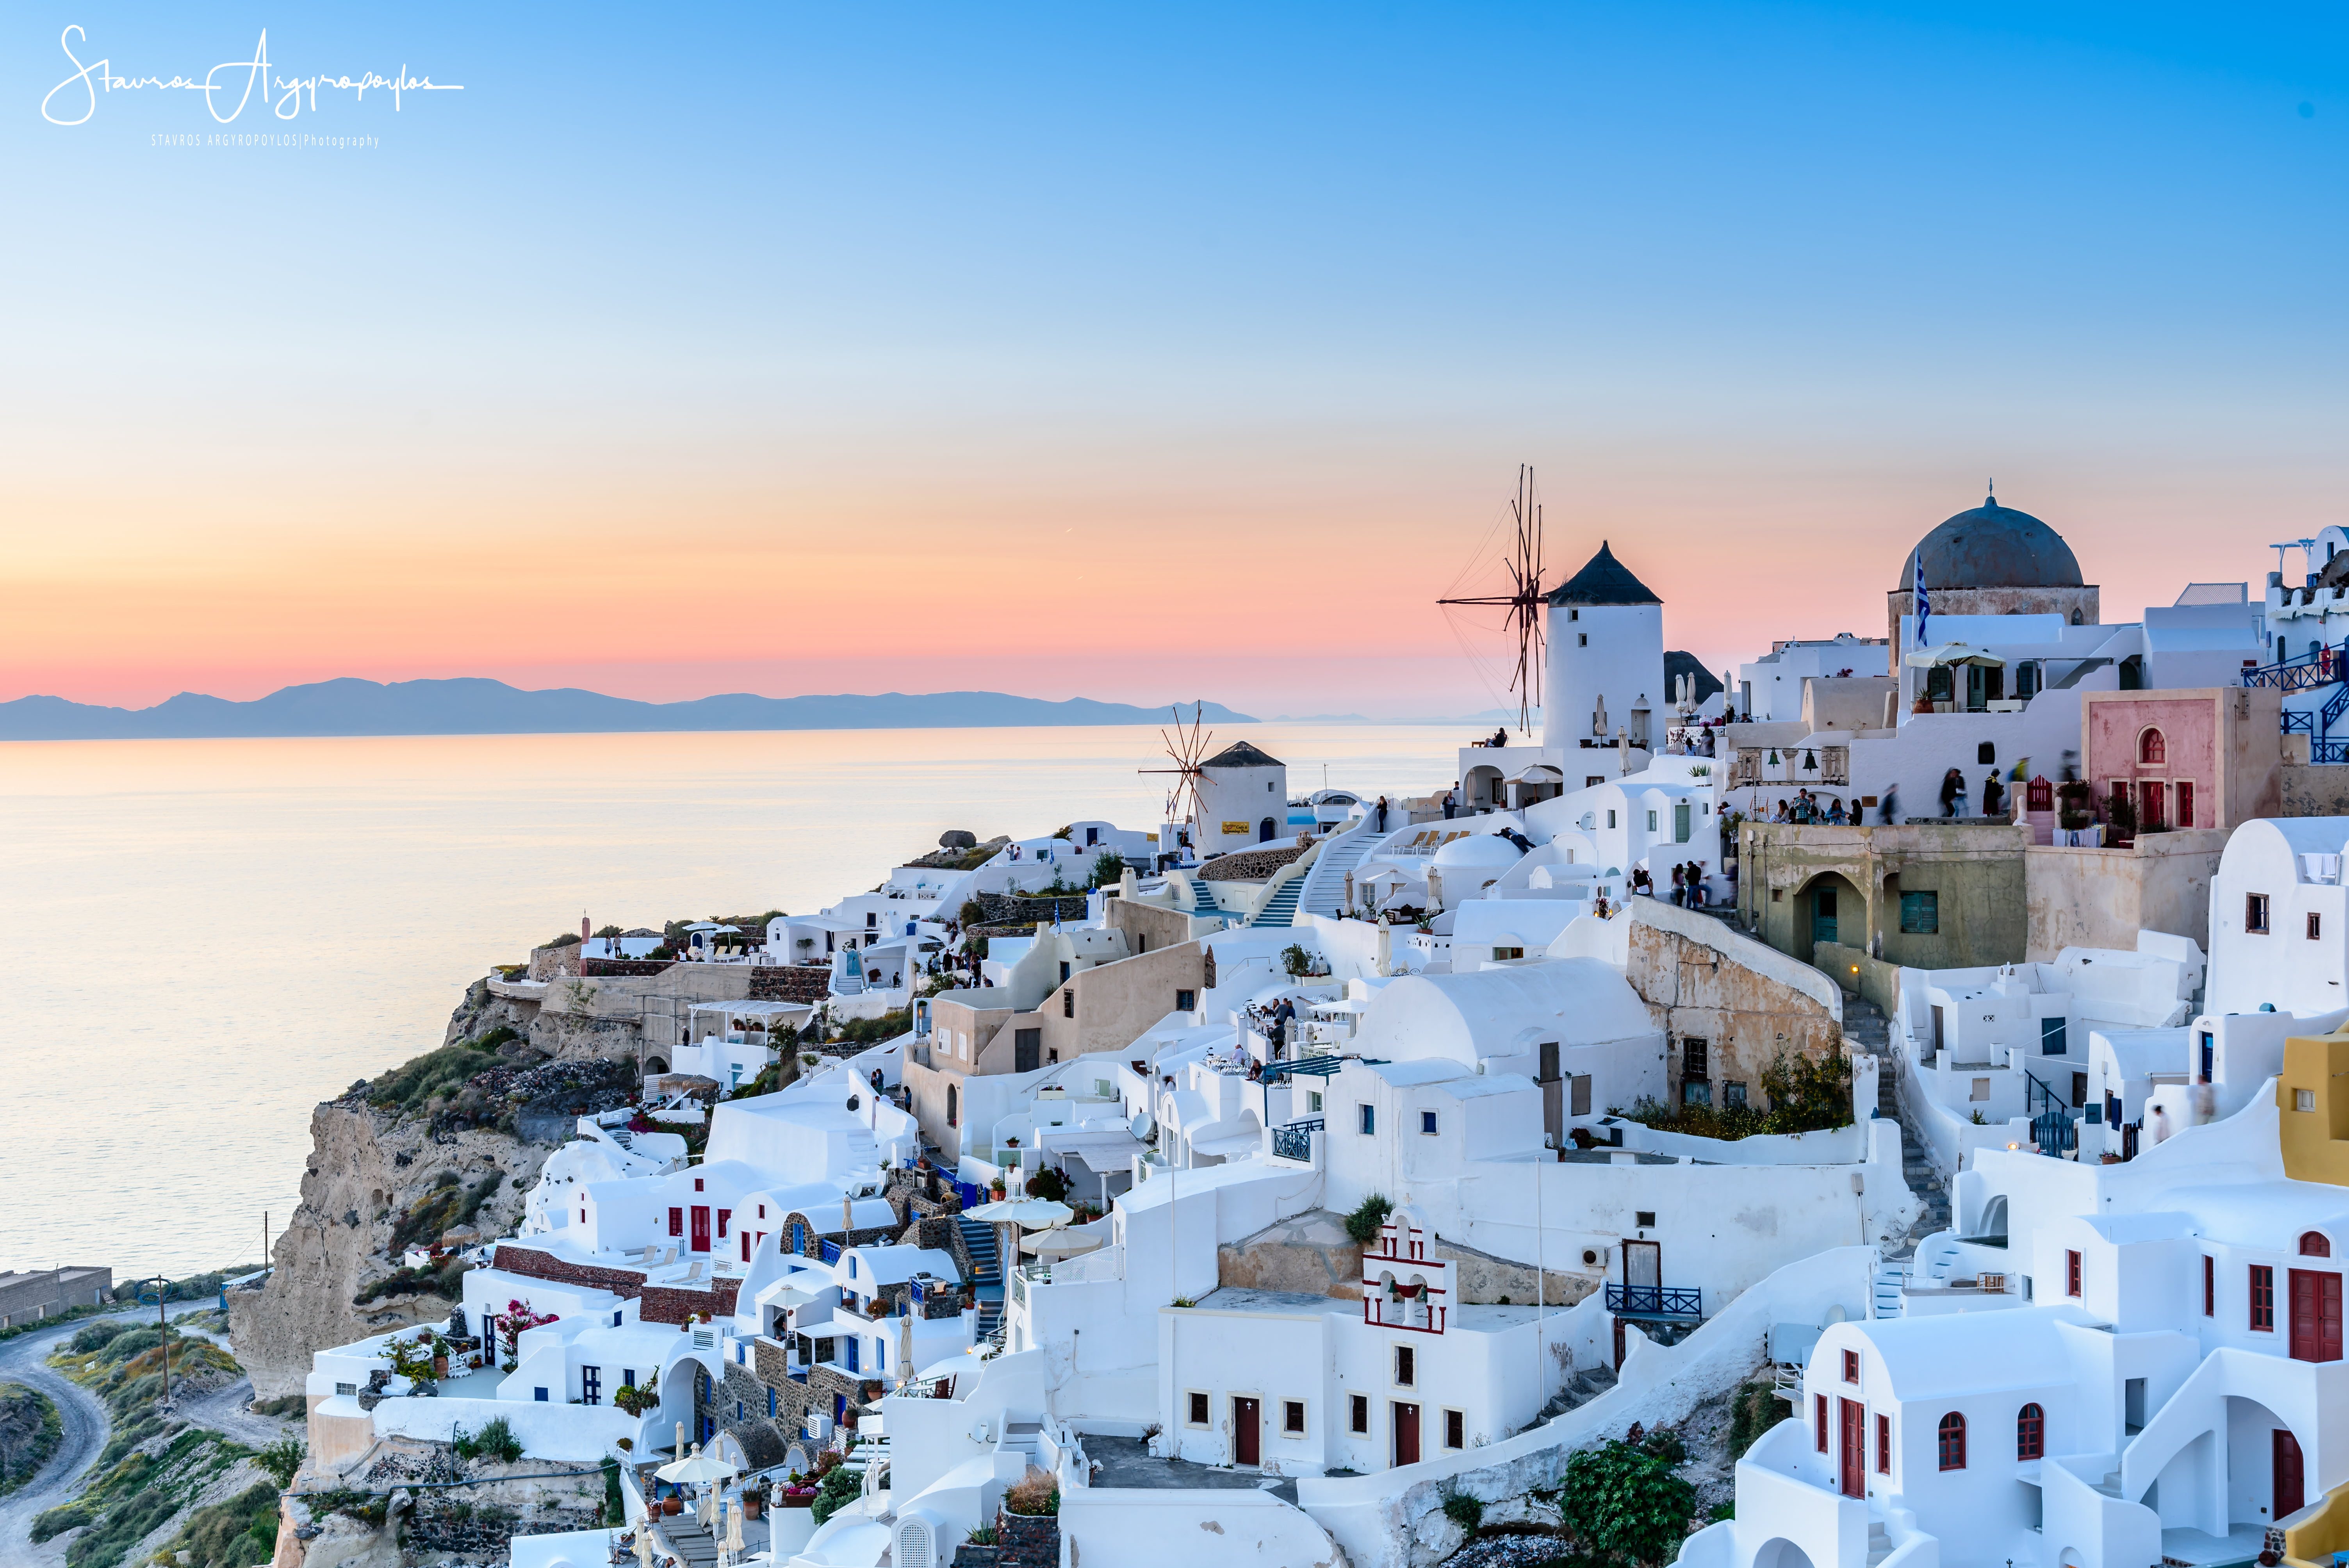 HD wallpaper Oia Village On Santorini Island In Greece Sunset 6016x4016